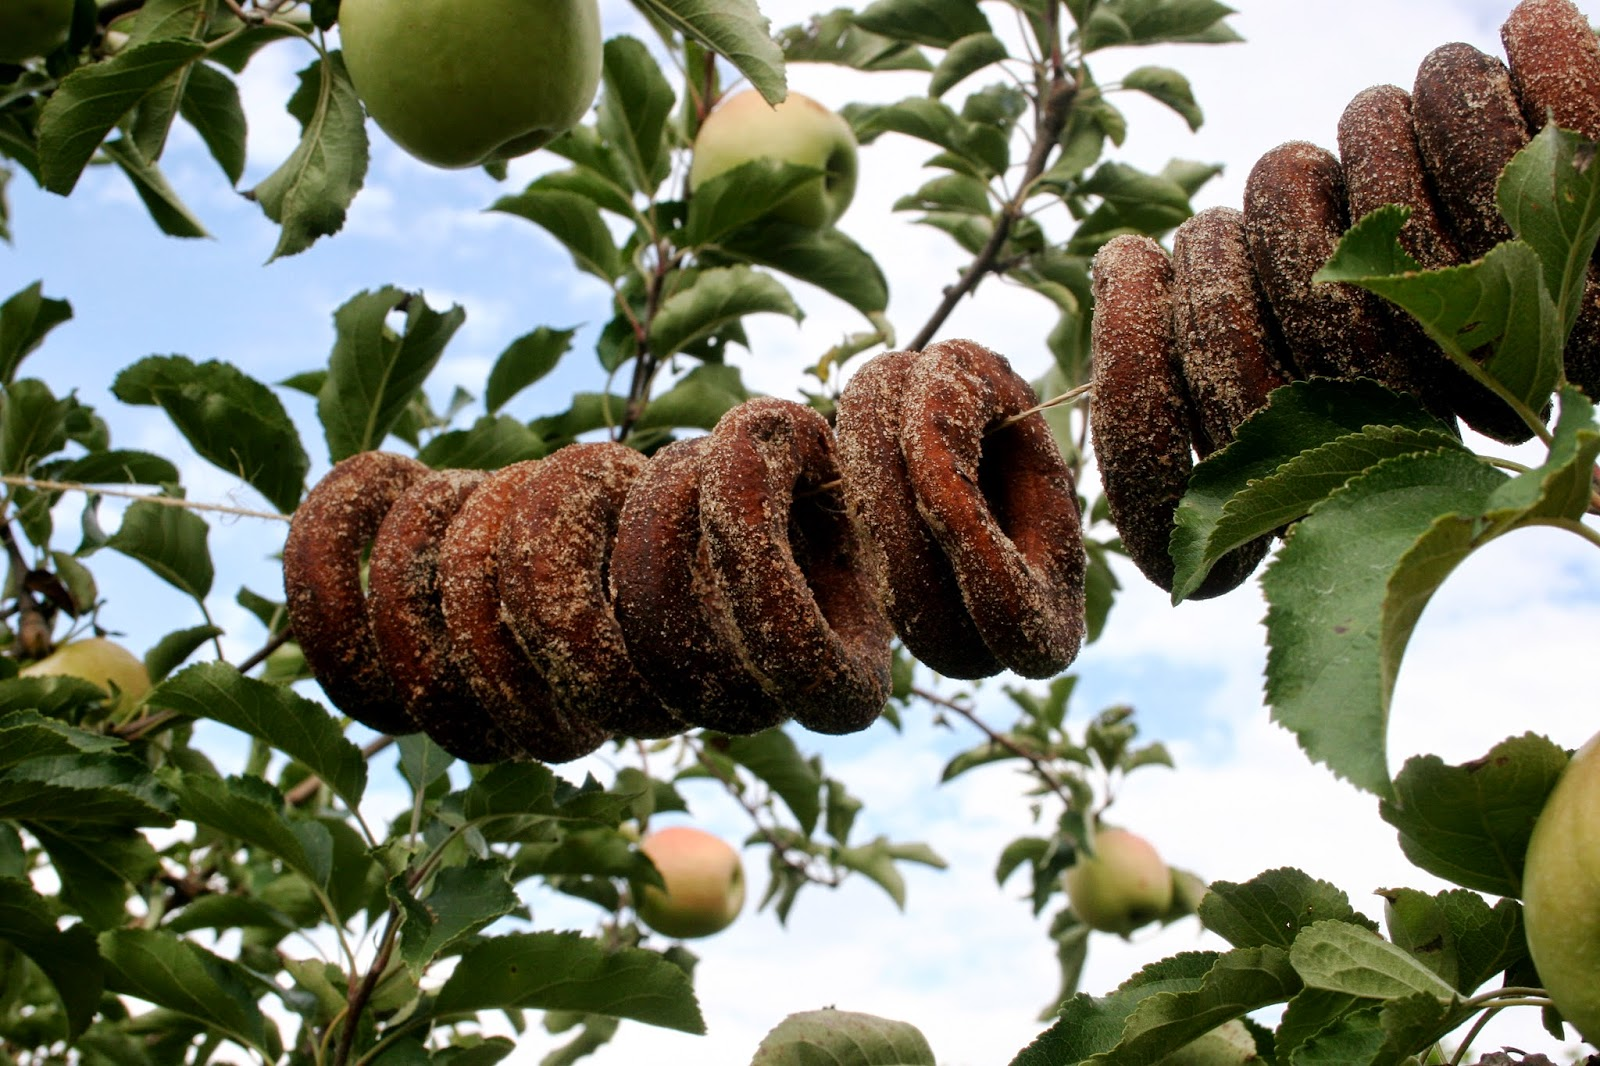 Apple Cider Doughnuts on a string